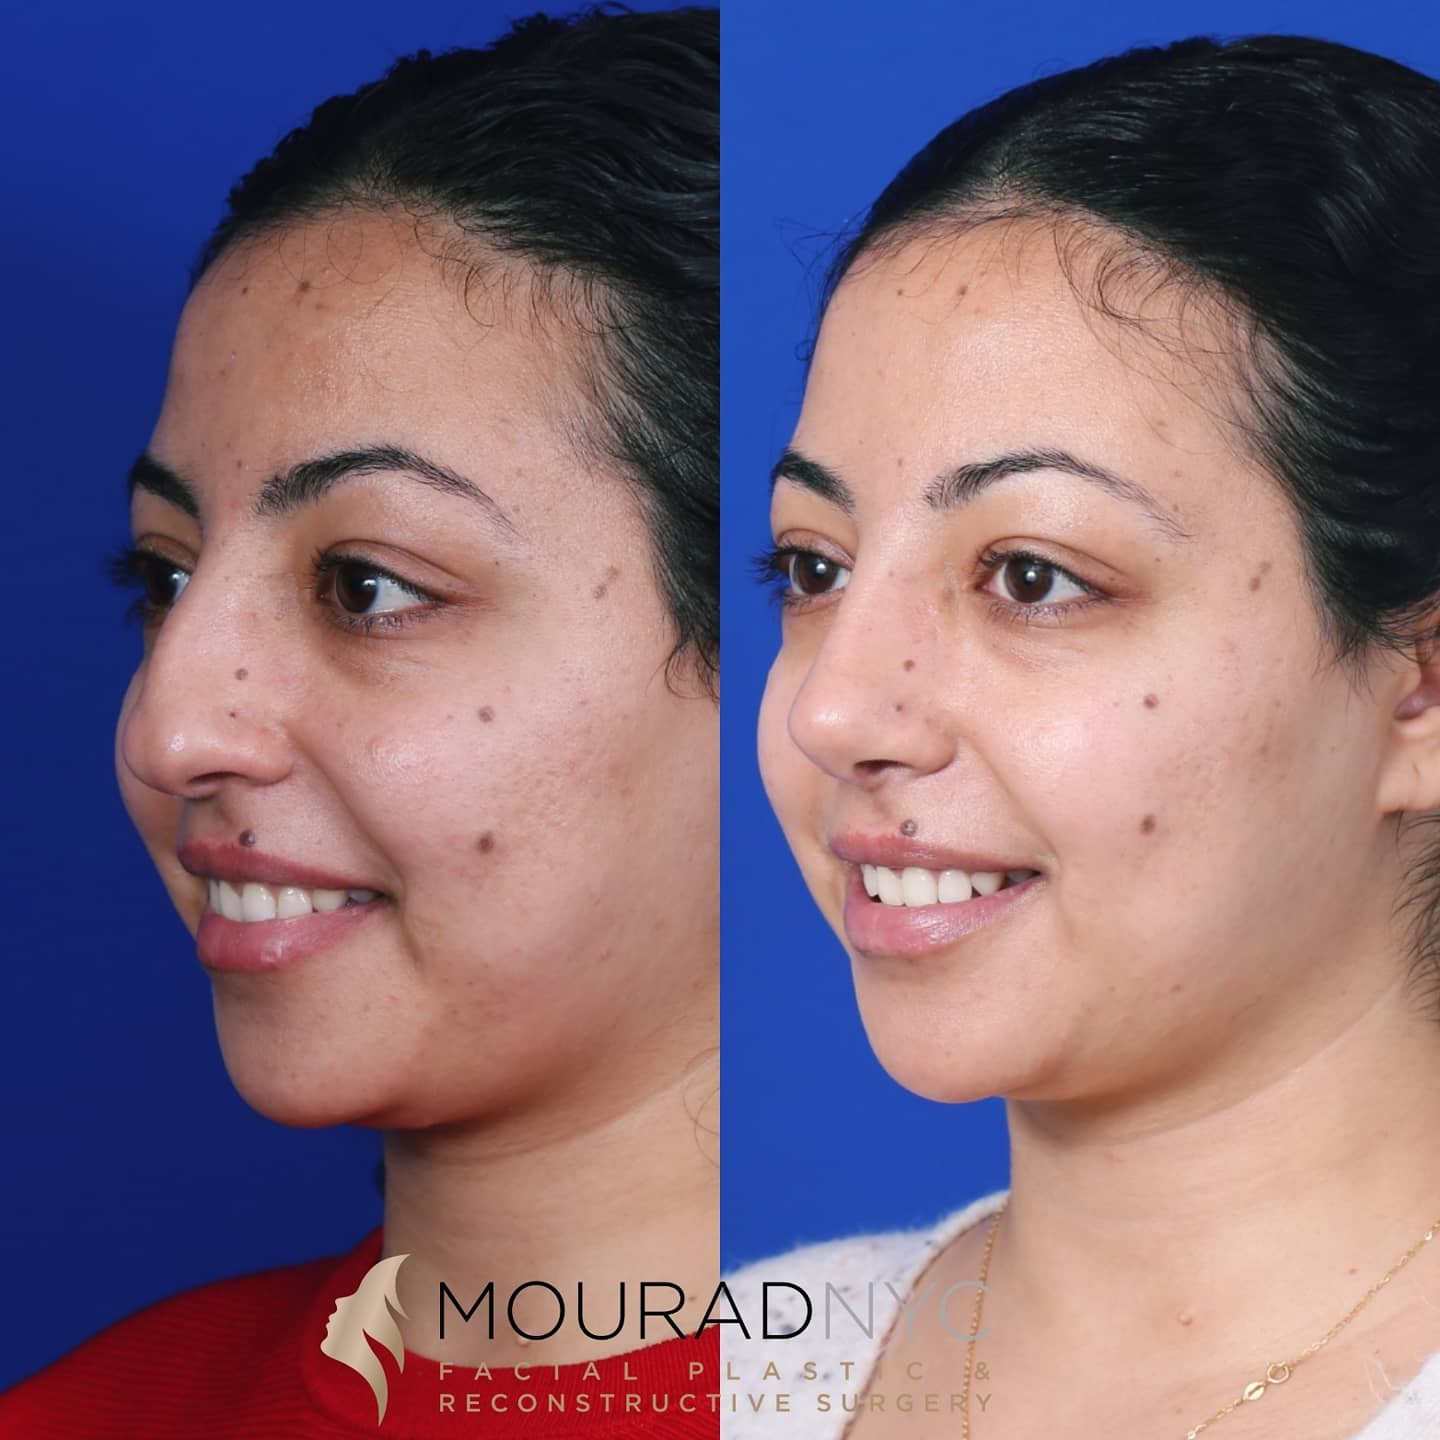 Ethnic Rhinoplasty Before and After